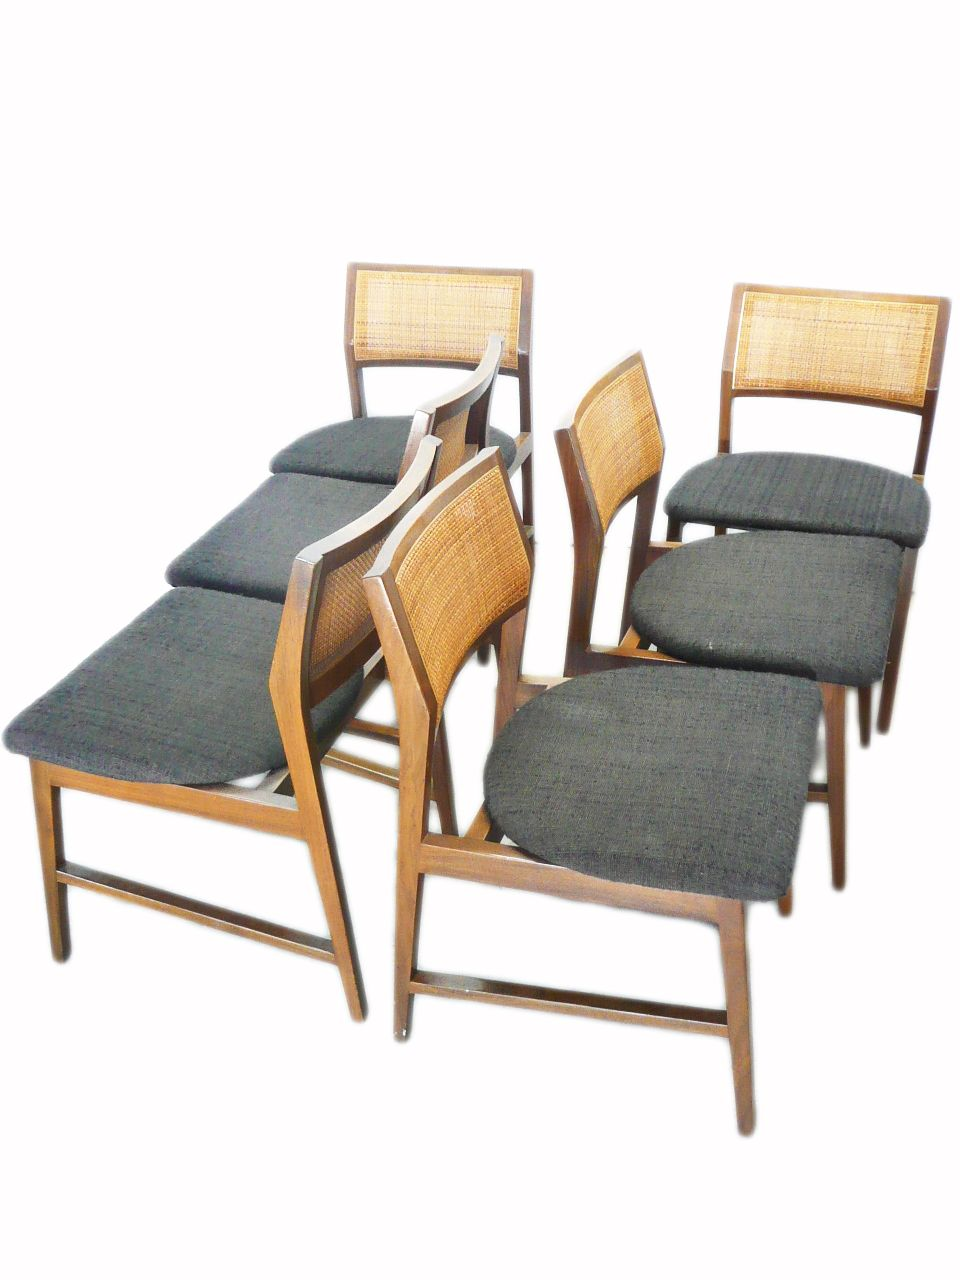 mid century vintage edward wormley for dunbar cane back dining chairs mid century modern. Black Bedroom Furniture Sets. Home Design Ideas